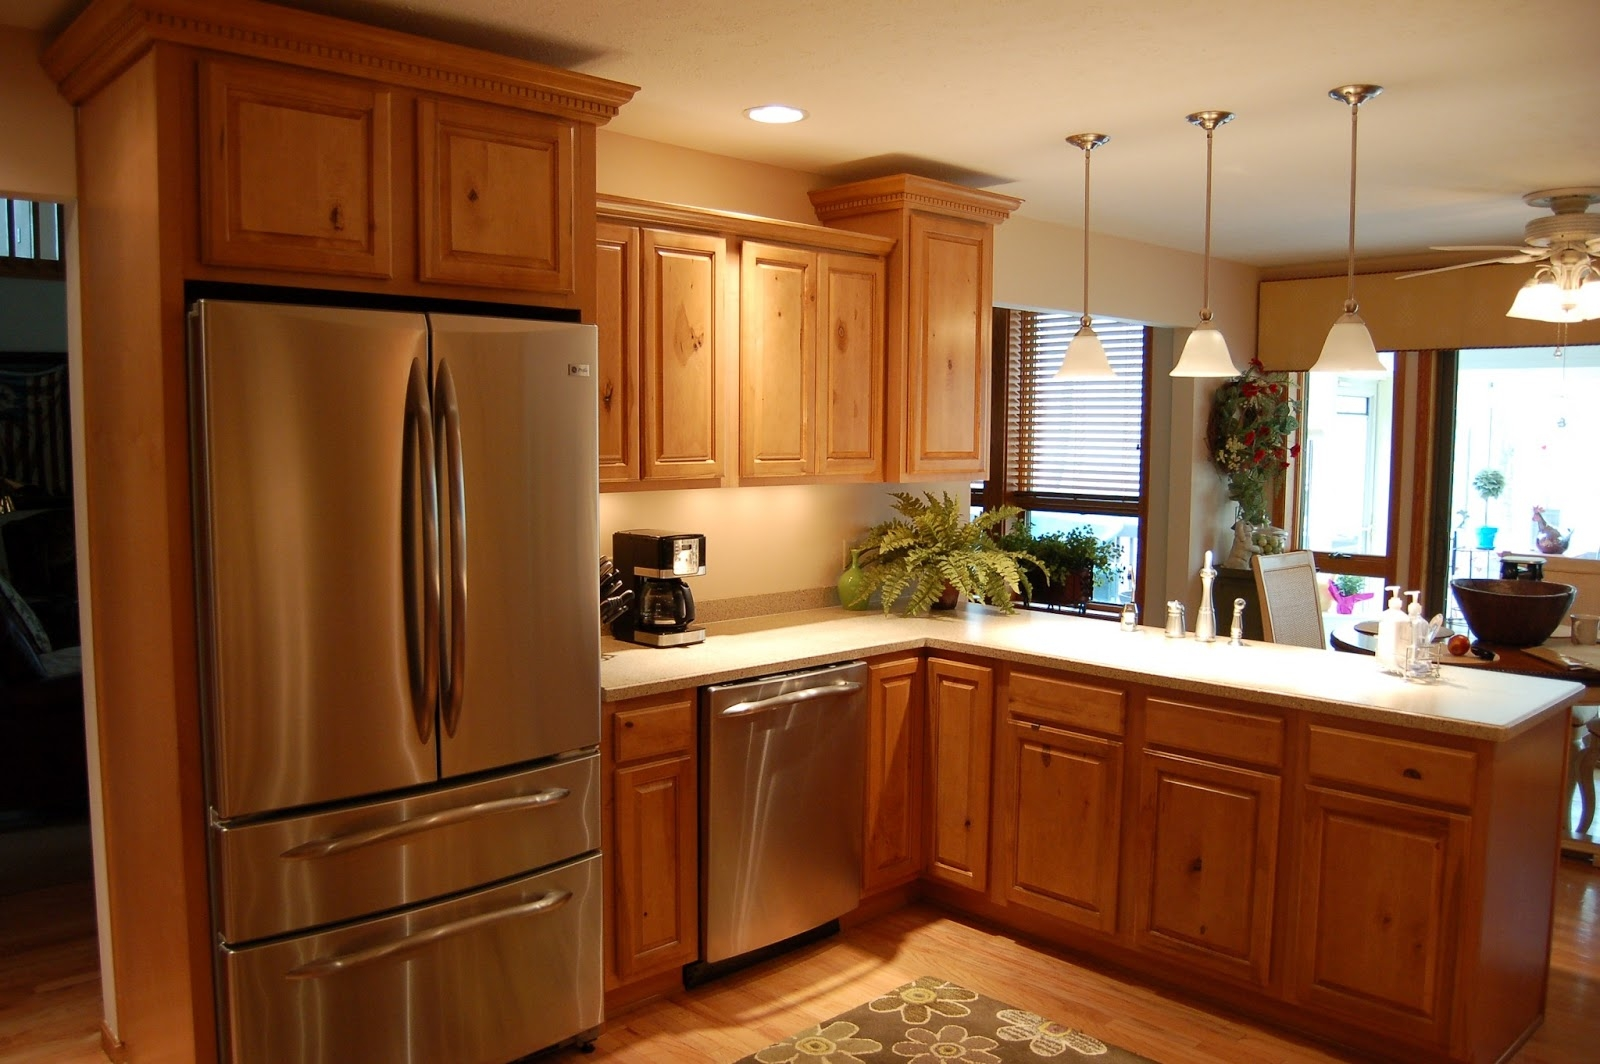 Kitchen Cabinets Design Ideas Photoskitchen cabinets new picture of kitchen cabinet design ideas